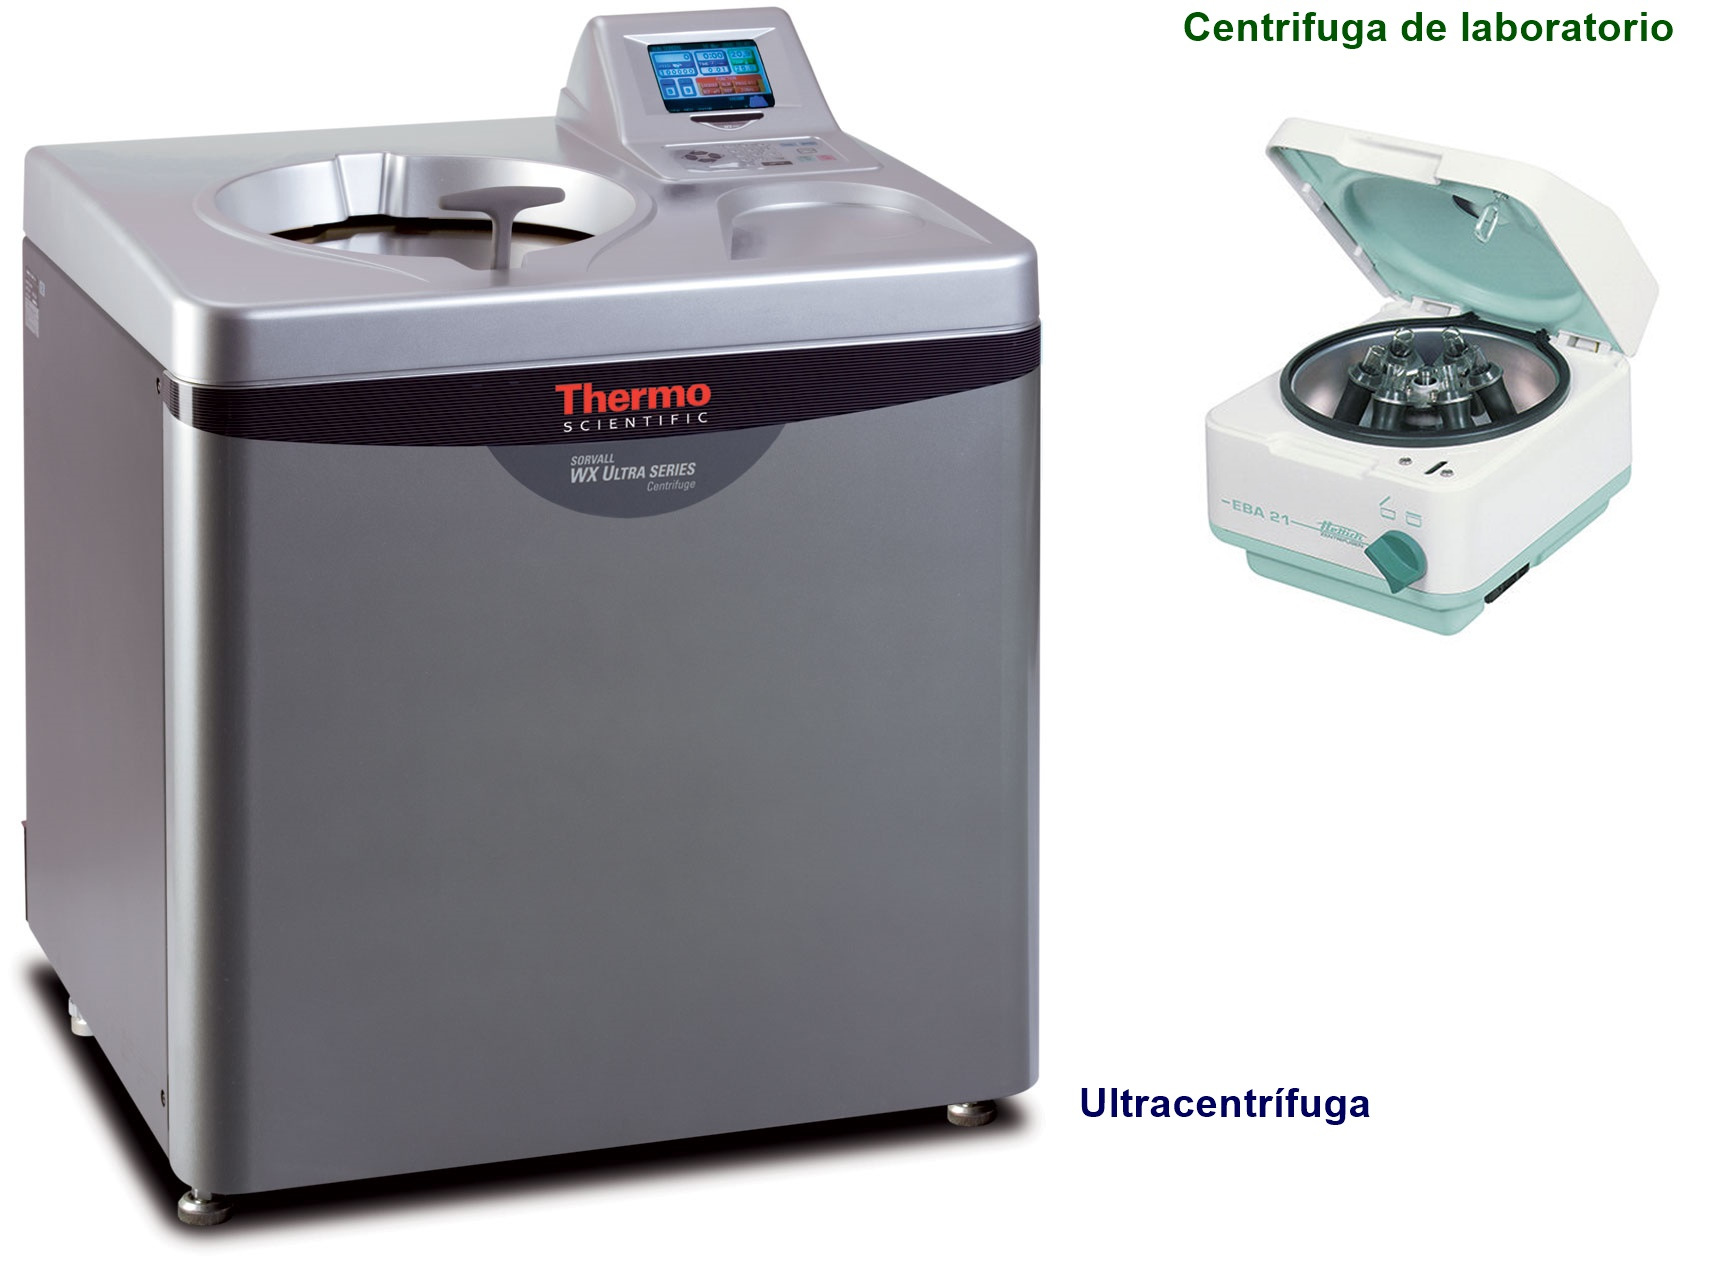 ultracentrifuga y centrifuga de laboratorio